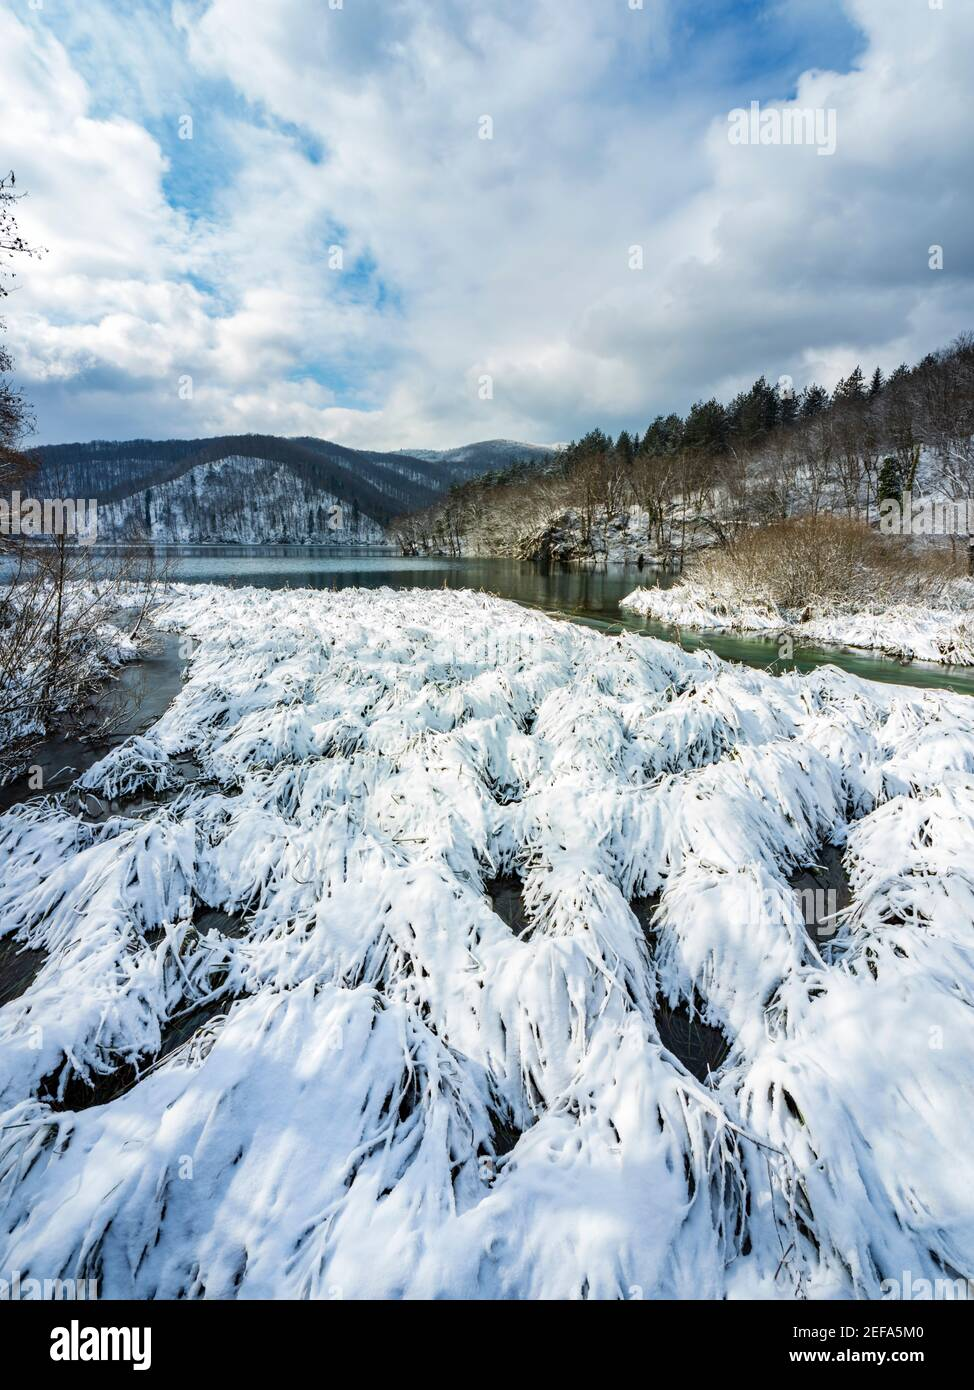 Snowy cover on suface lake Kozjak vegetation national park Plitvice lakes Croatia Europe Winter under covered cover snow ice Stock Photo